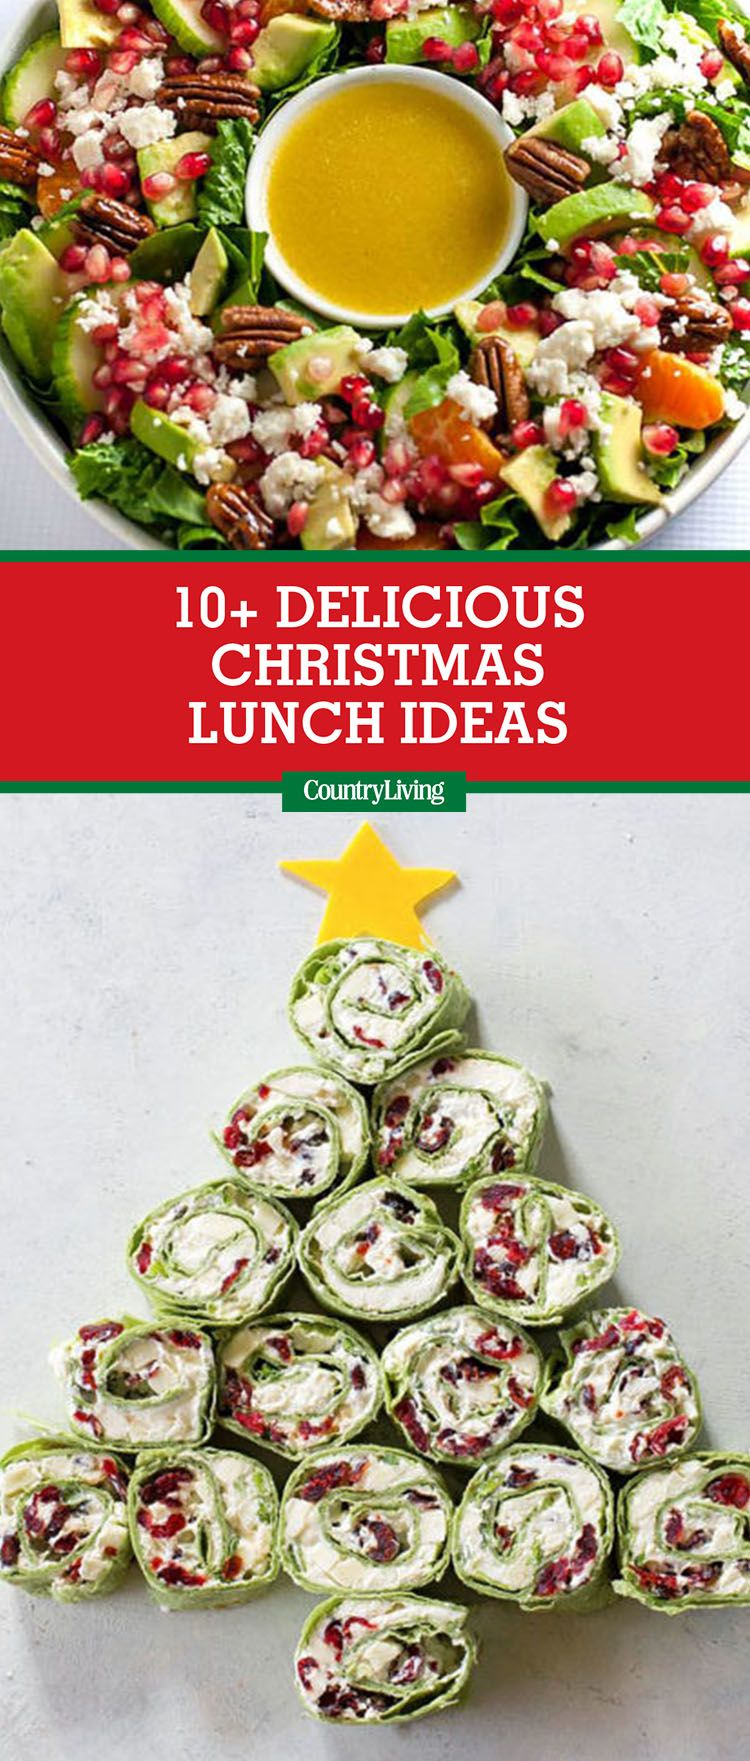 Light Christmas Lunch Ideas, From Leek Quiche to Cranberry